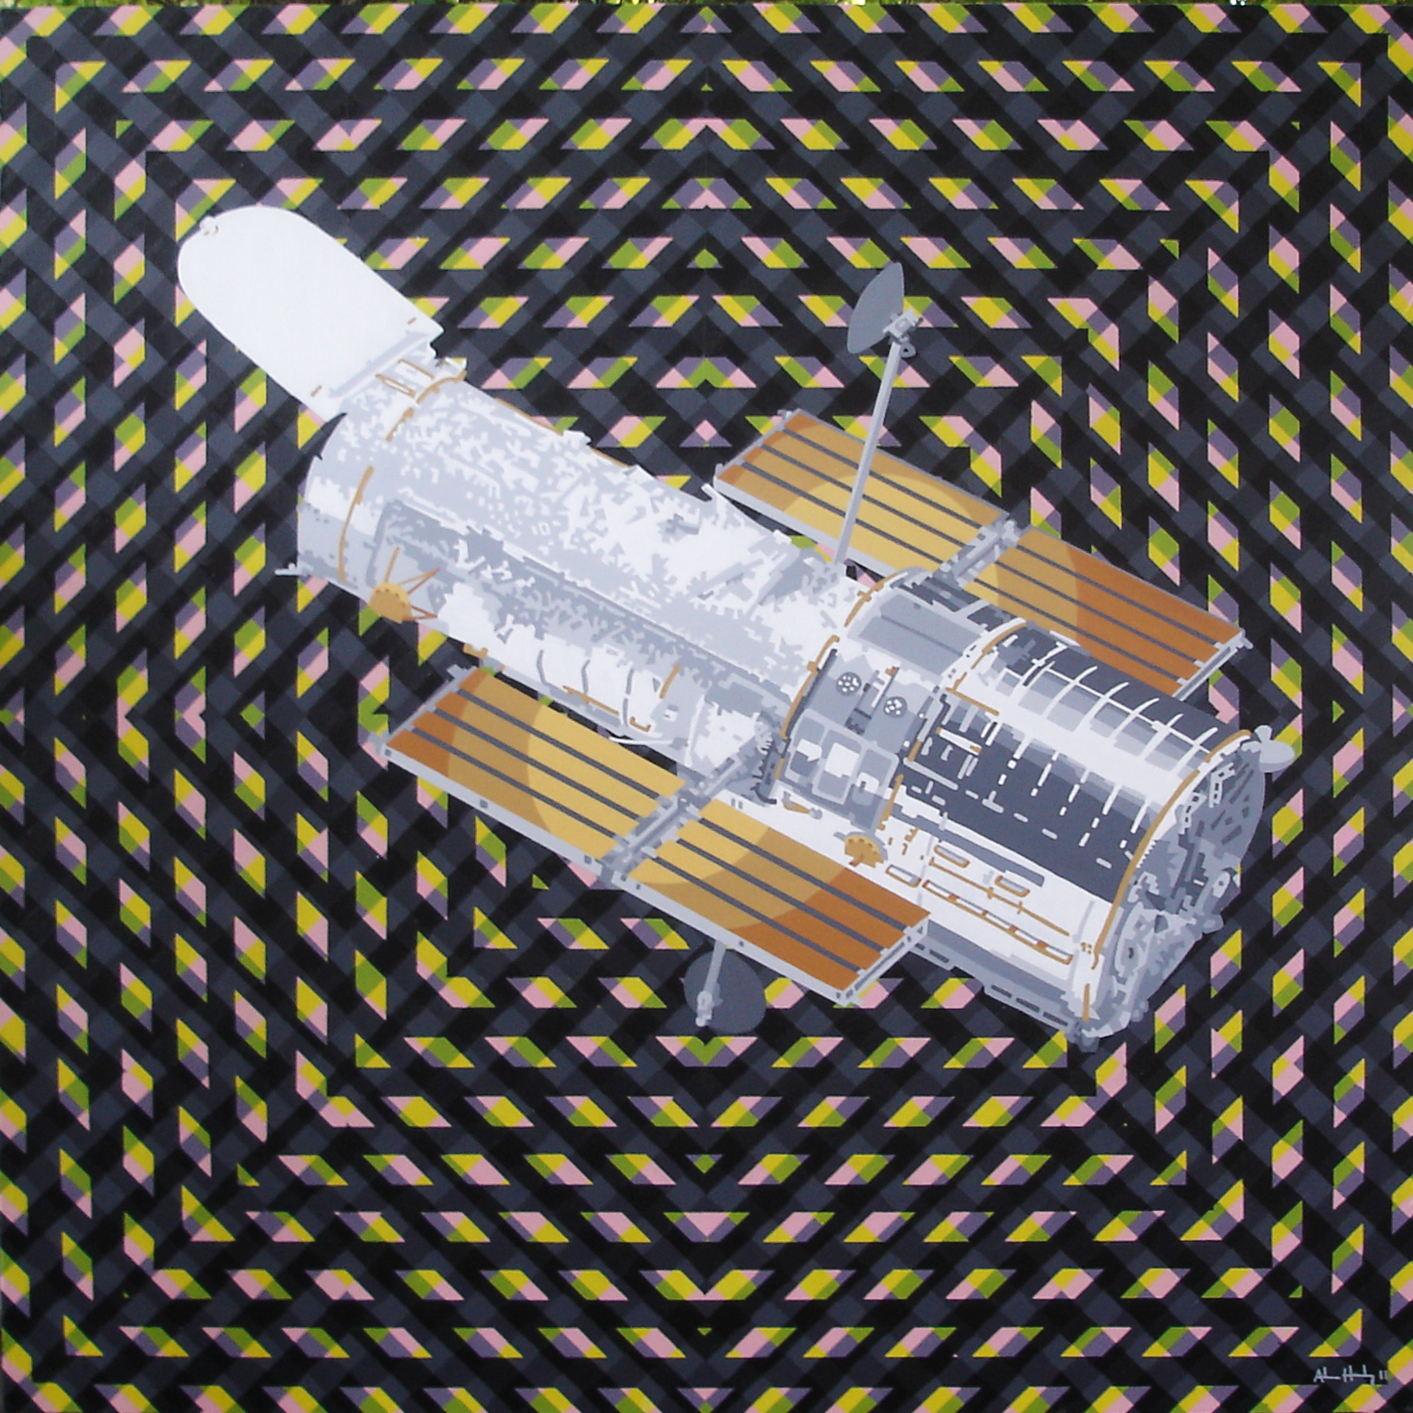 """They Worship the Hubble Space Telescope""   Acrylic on hardboard panel  36"" x 36"" 2011"